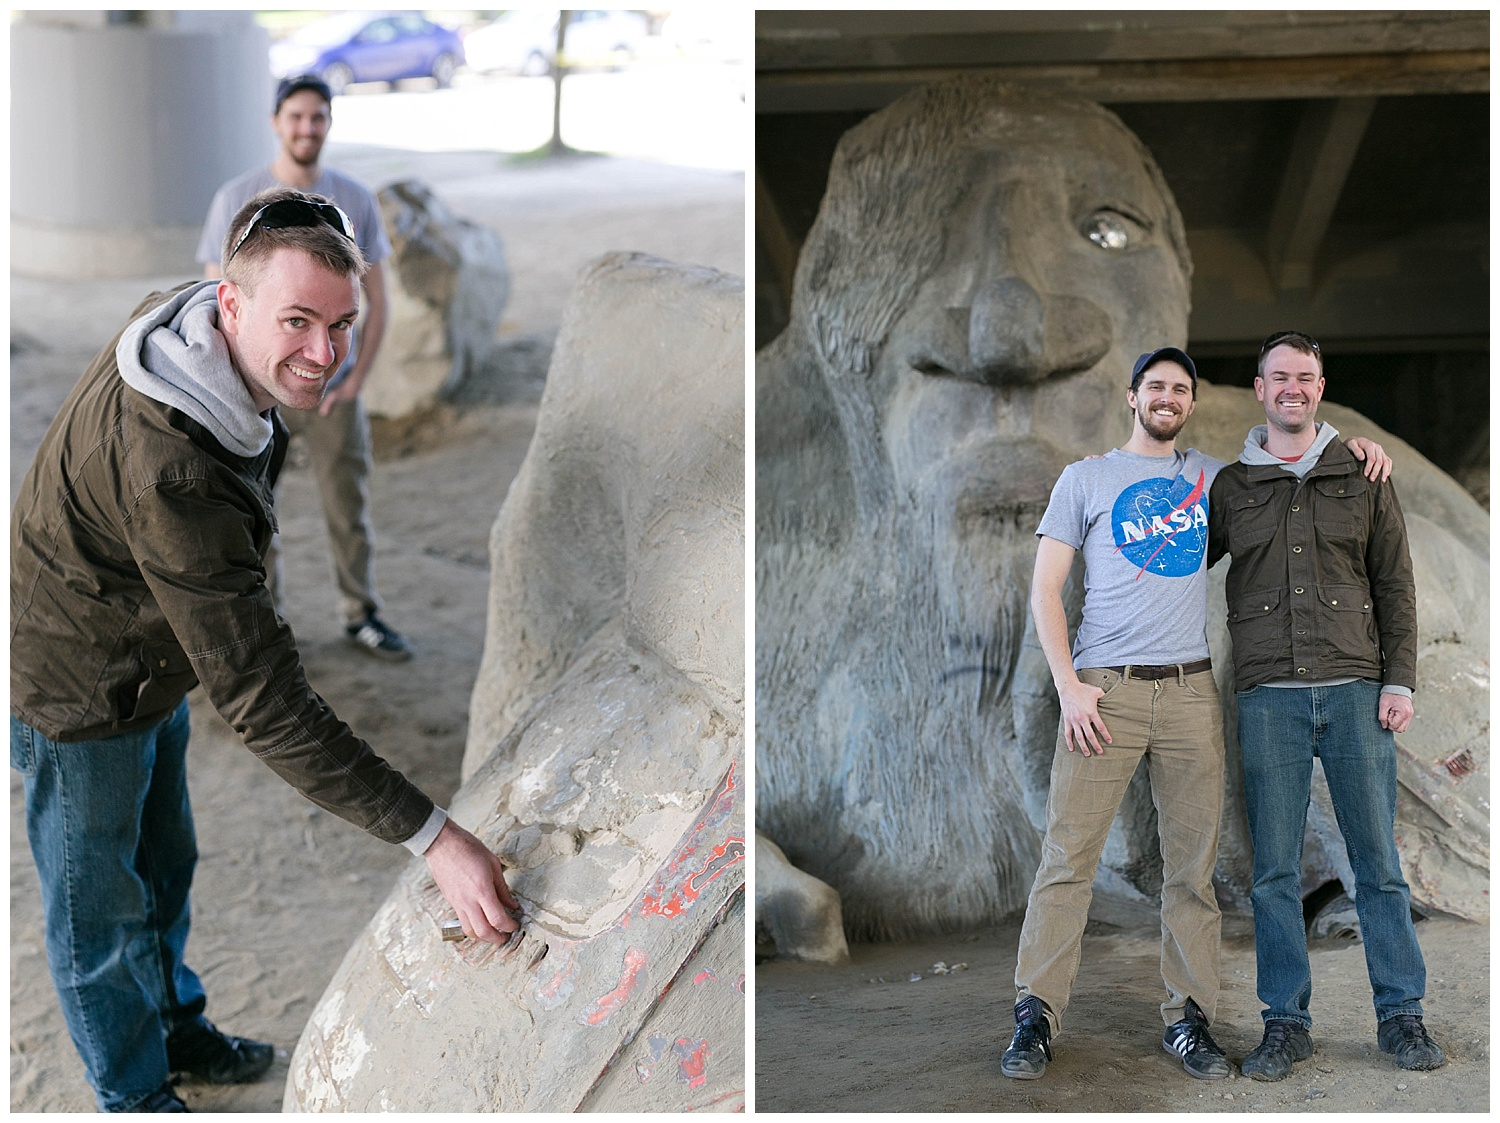 The Fremont Troll is located under a bridge that was becoming a dumping group for trash and a gathering place for illegal activity. Now after the trolls arrival, this area is filled with visitors coming the check out the troll, poke his hubcap eye, or get up close and personal with the real  VW bug clasped firmly in his hand. Nick got a little too curious...